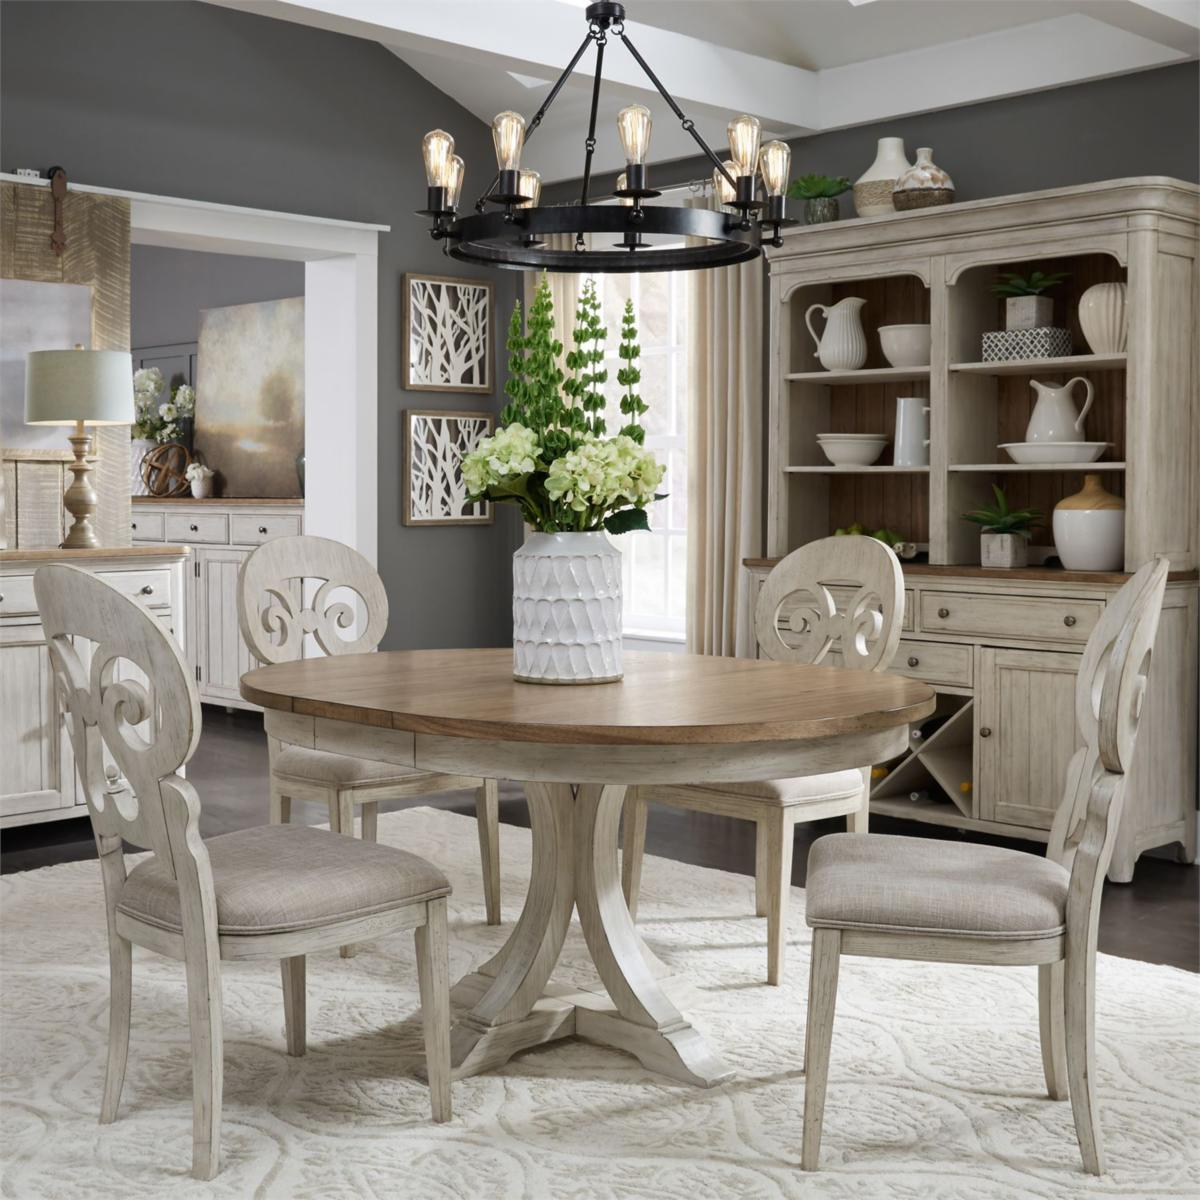 Our Favorite Farmhouse Dining Sets For Sale At Star Furniture Star Furniture Blog